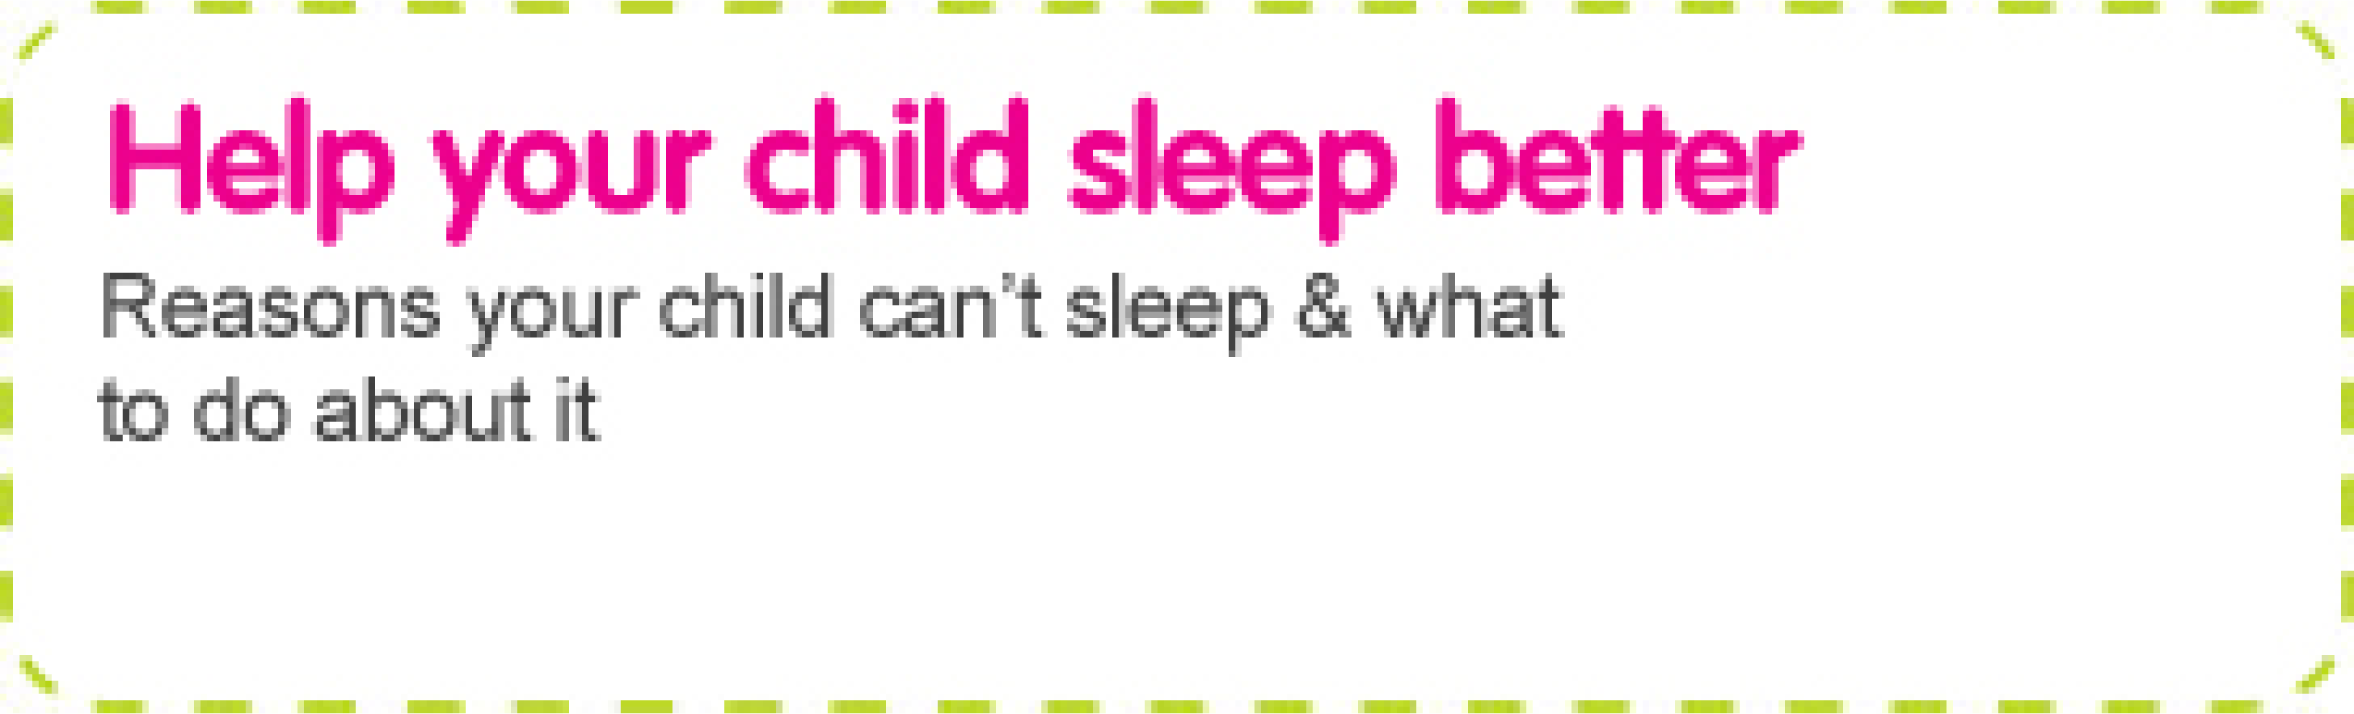 Help children sleep better